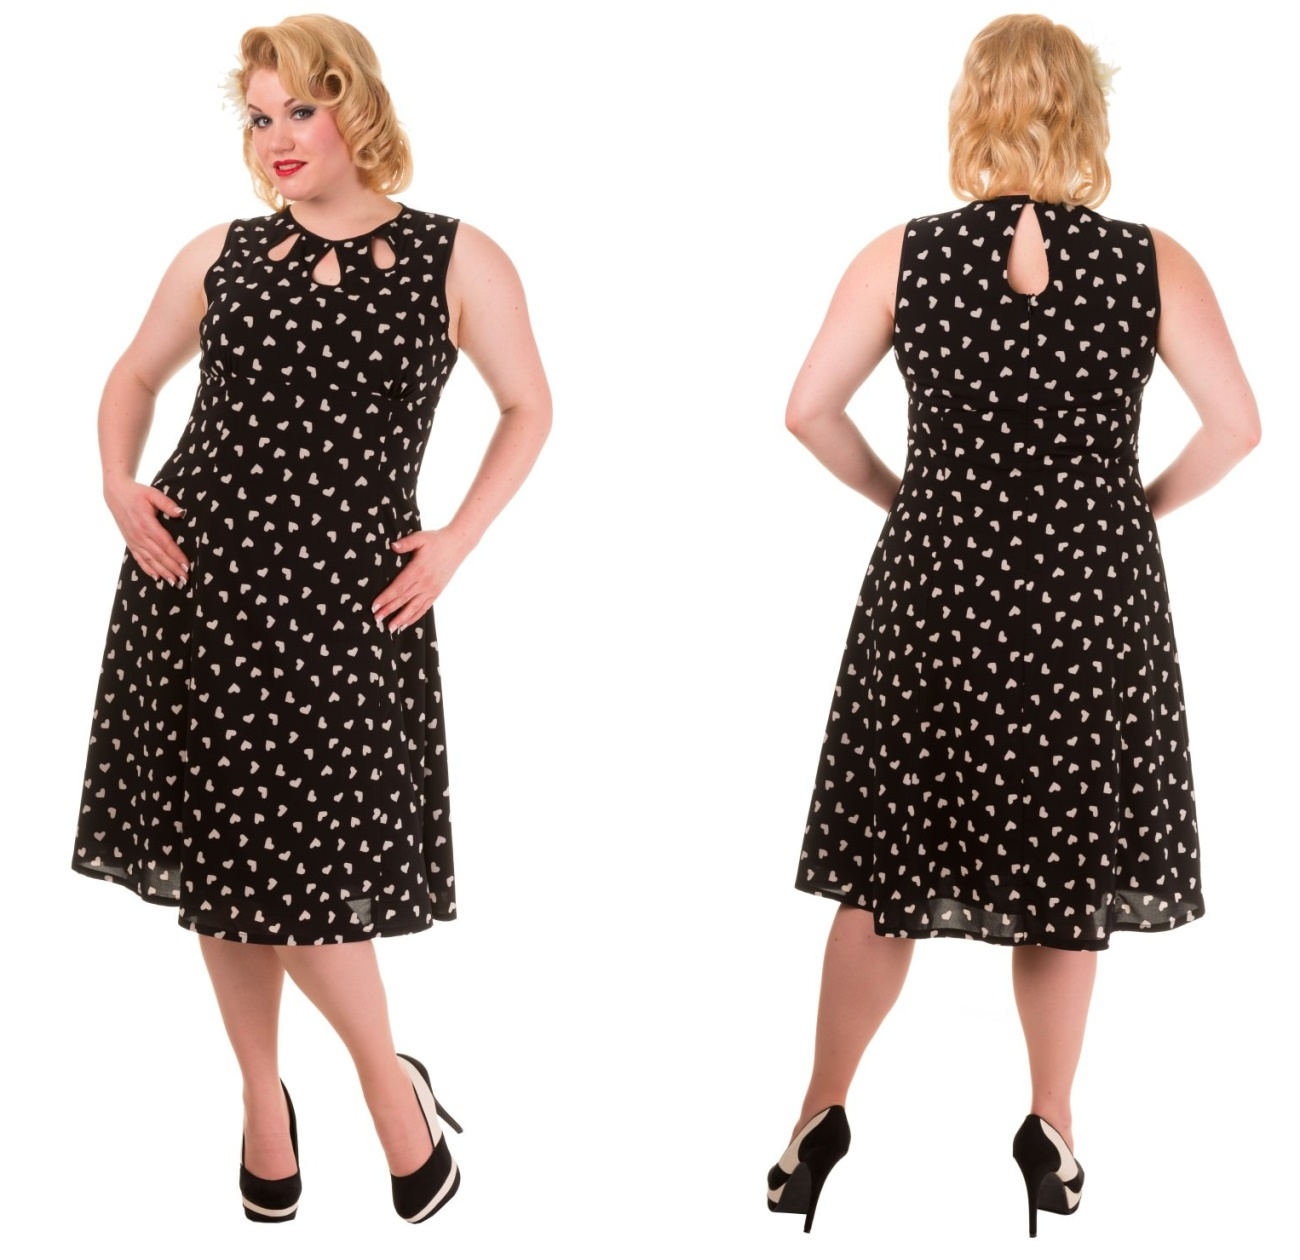 464117500b82 Songbird Dress Rockabilly Kleid Plussize Banned - Banned bei Army Shop -  www.armydepot-chemnitz.de